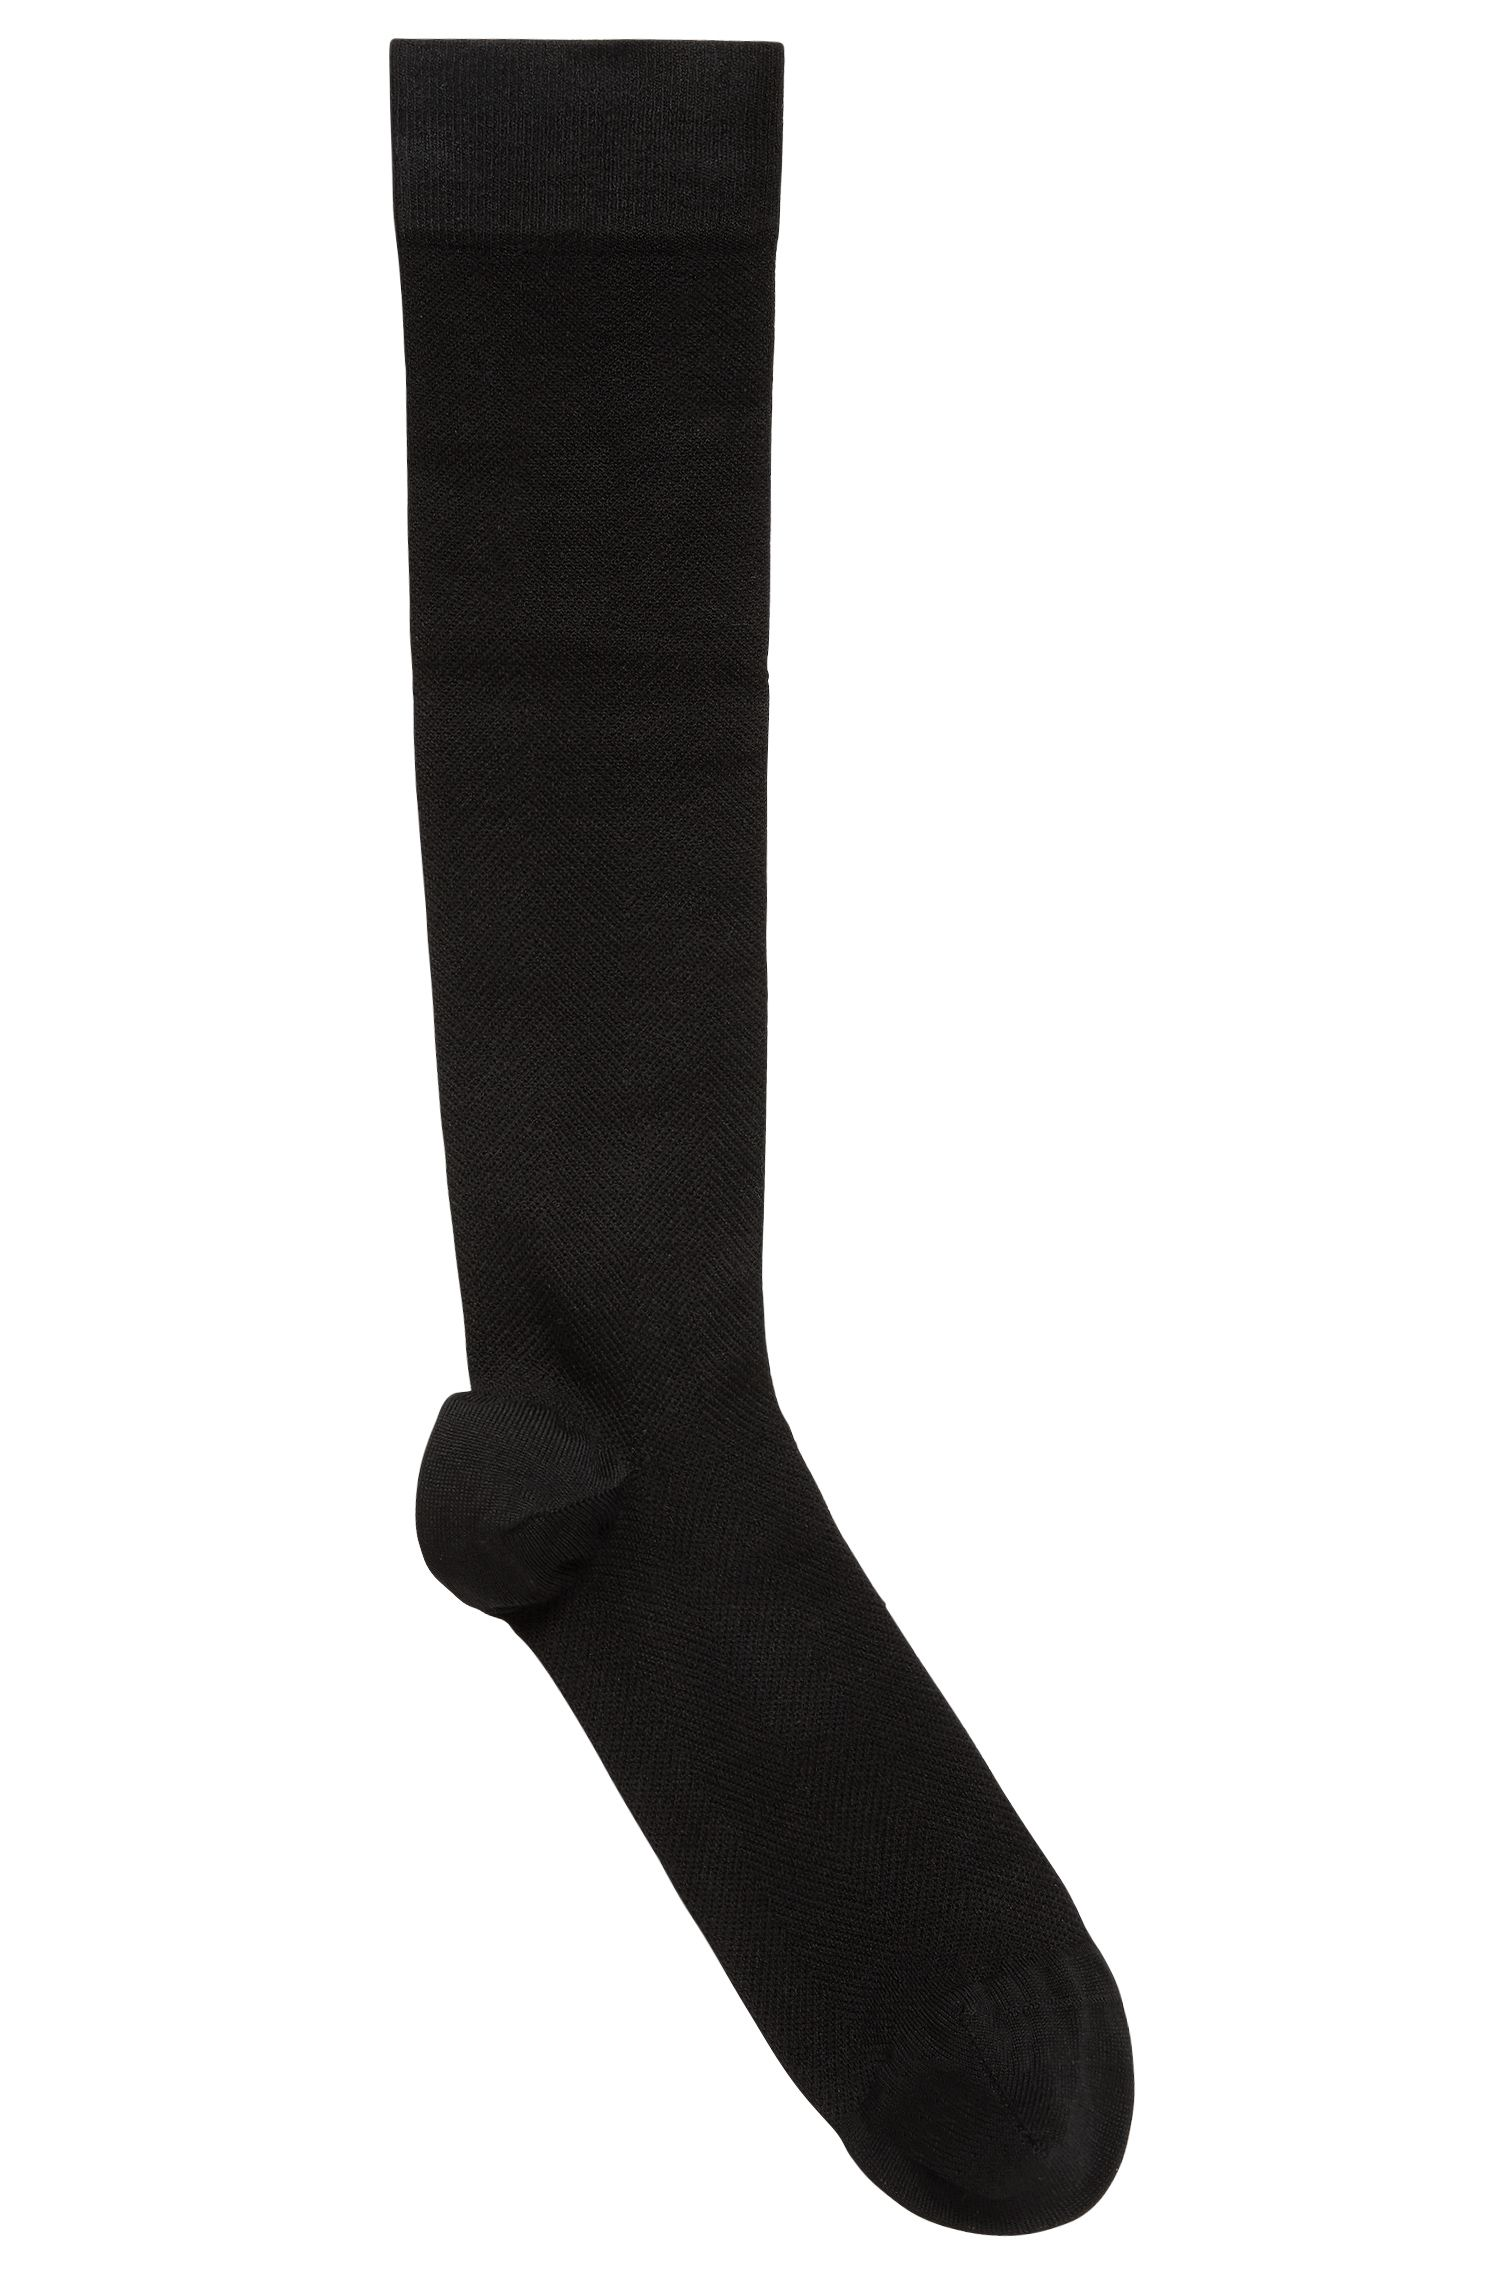 Knee-high socks with technical compression